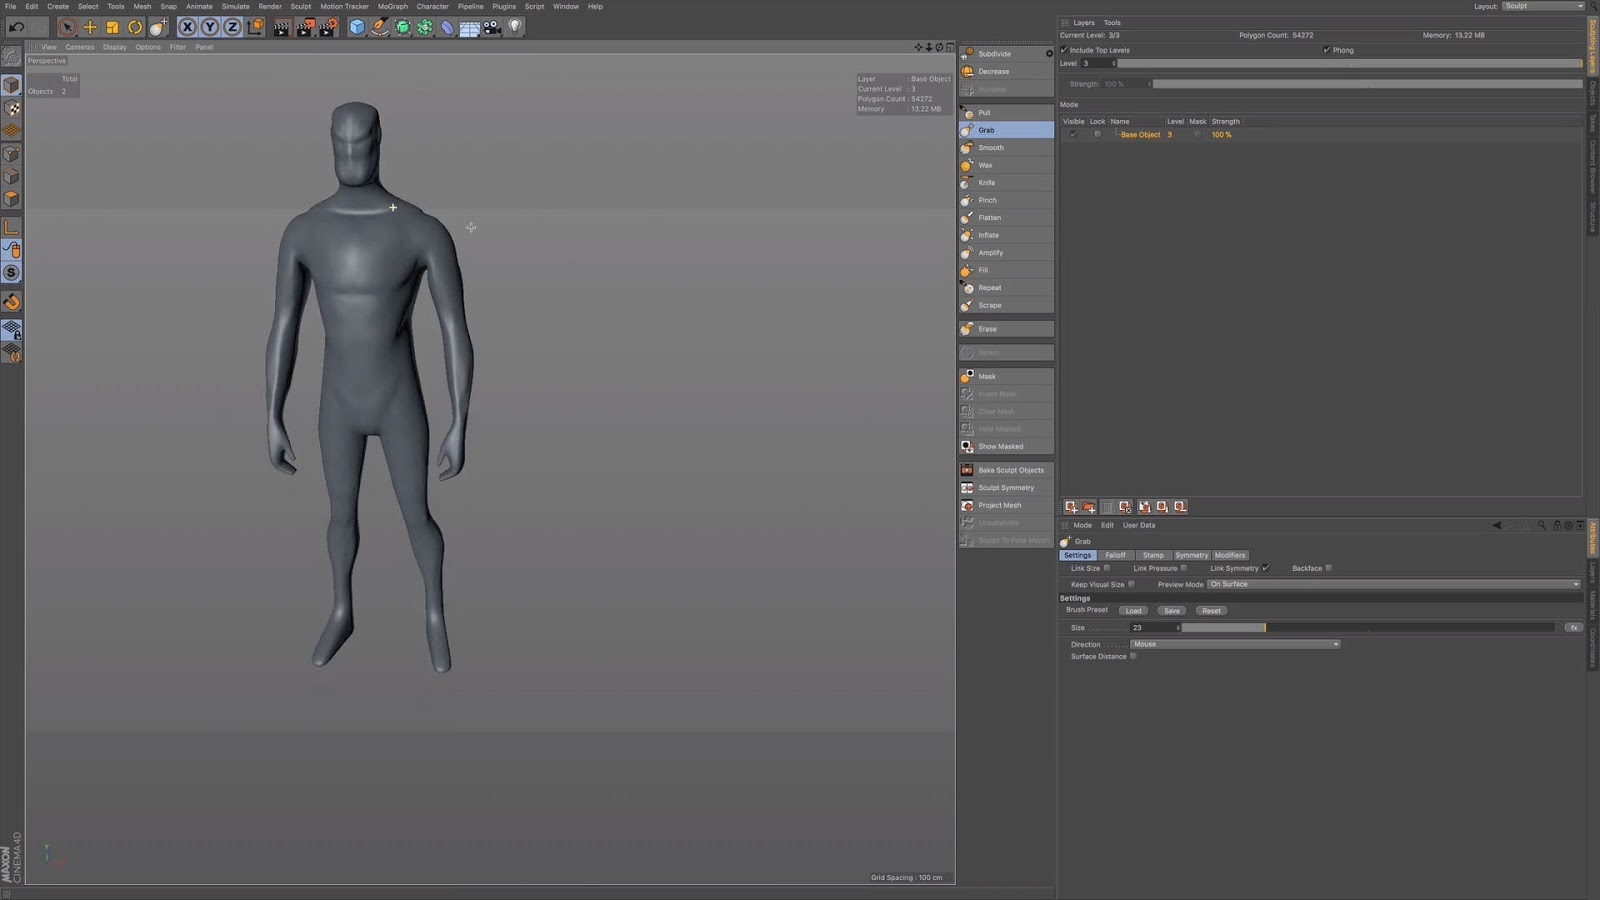 Character Design Cinema 4d Tutorial : Workflows for creating characters in cinema d cg tutorial